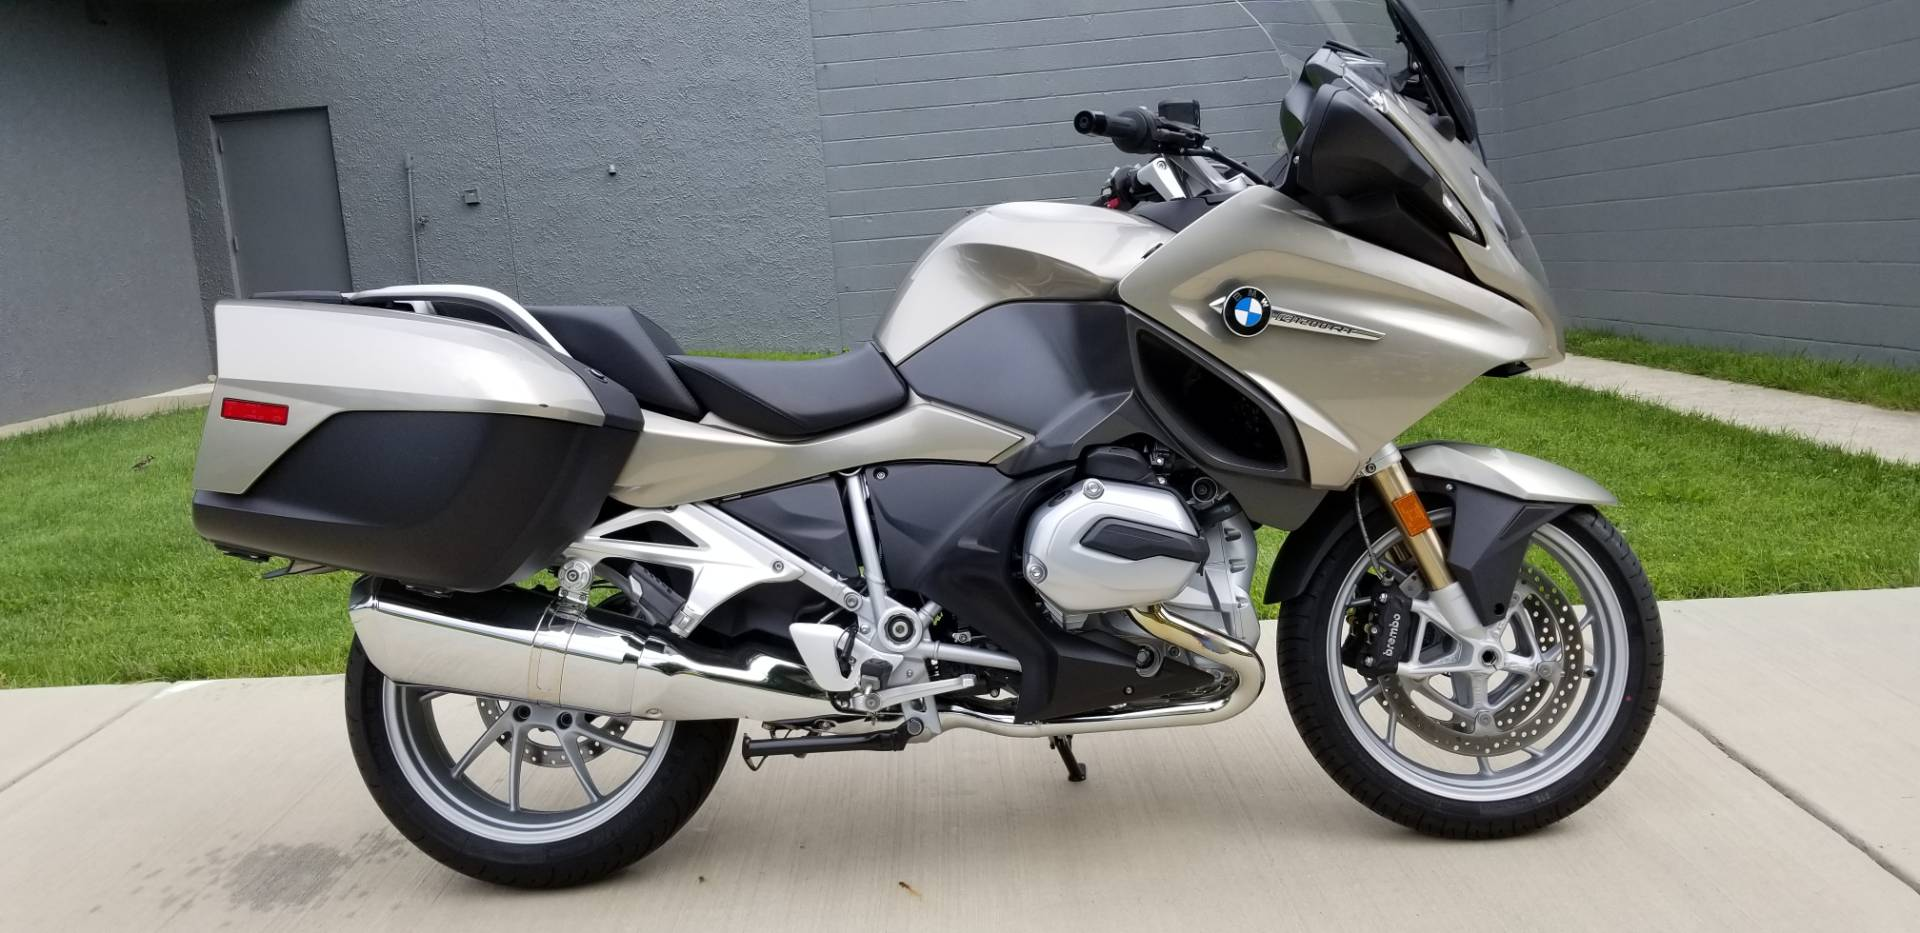 new 2017 bmw r 1200 rt motorcycles in gaithersburg md stock number 466498. Black Bedroom Furniture Sets. Home Design Ideas